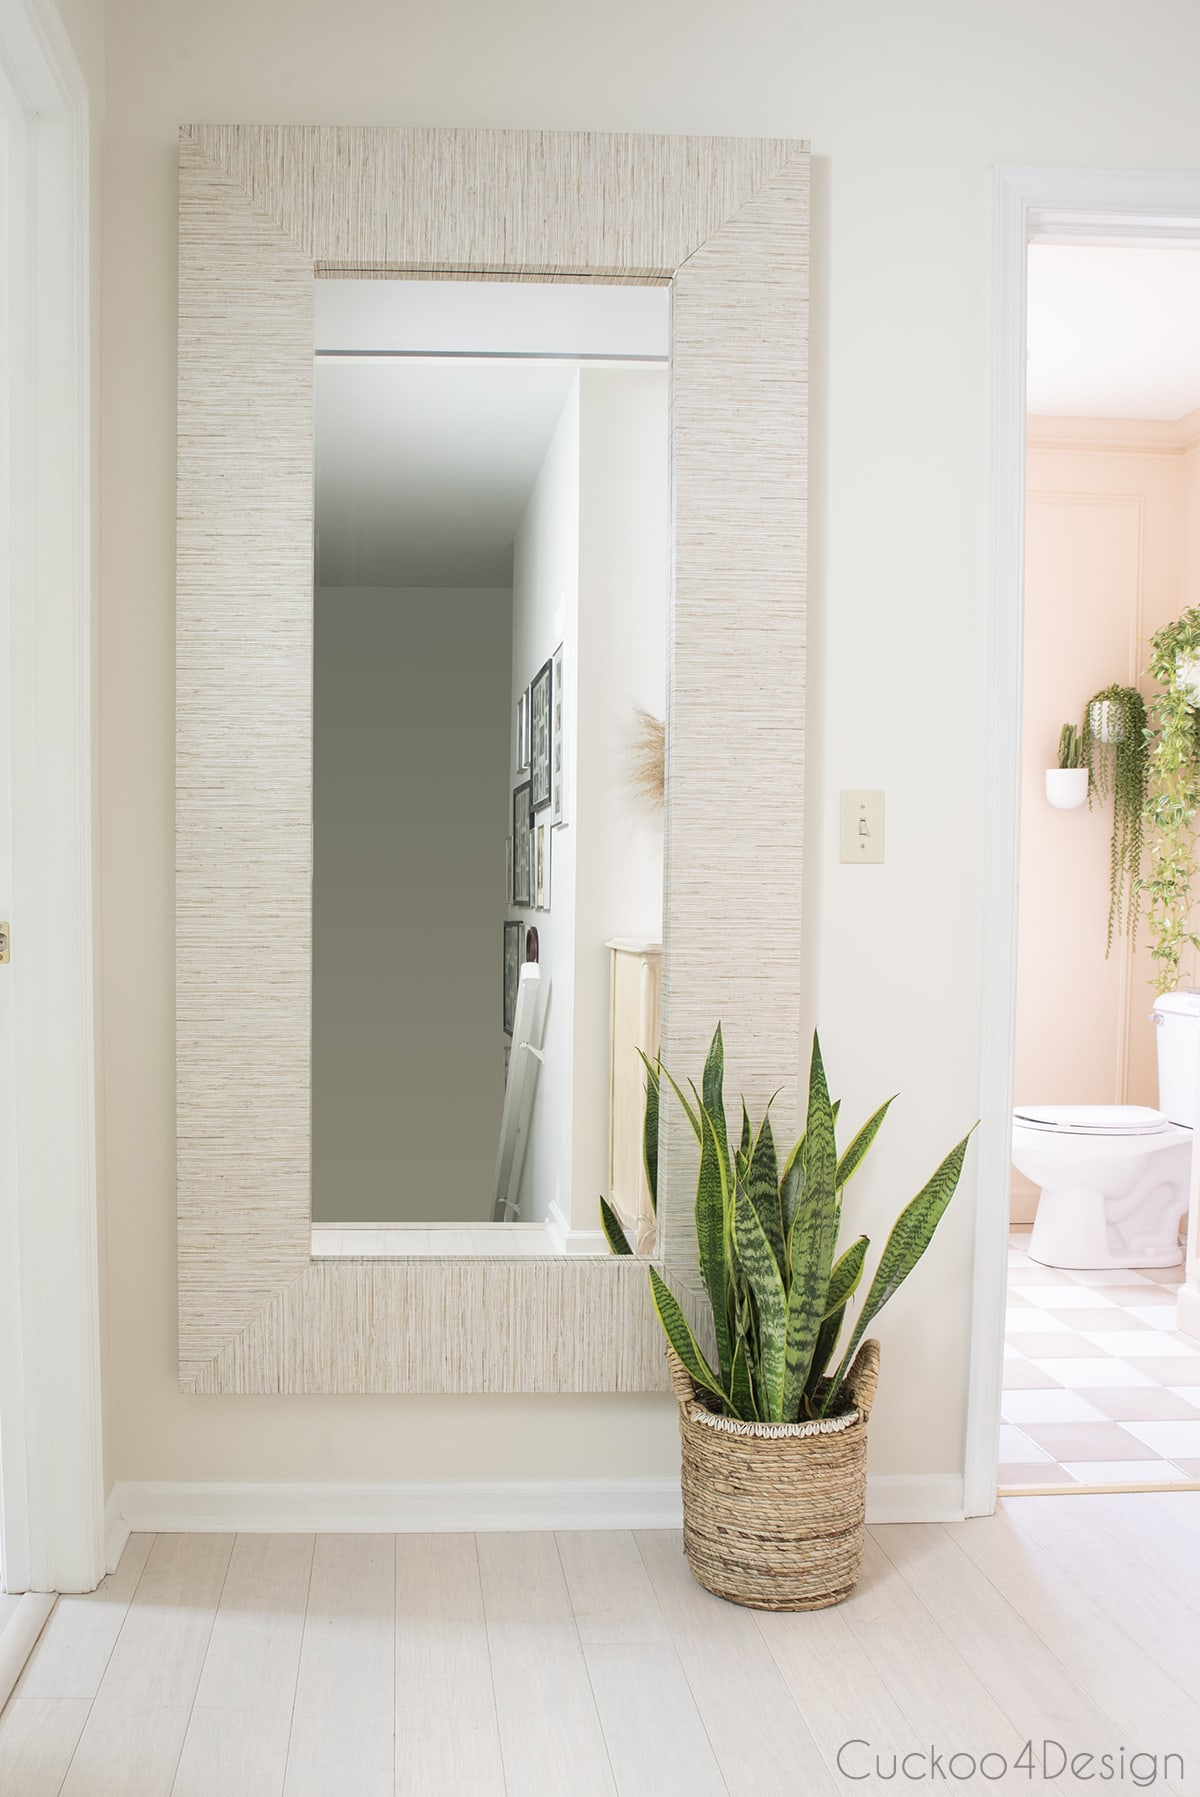 Ikea Mongstad mirror with faux grasscloth wallpaper hanging in the hallway